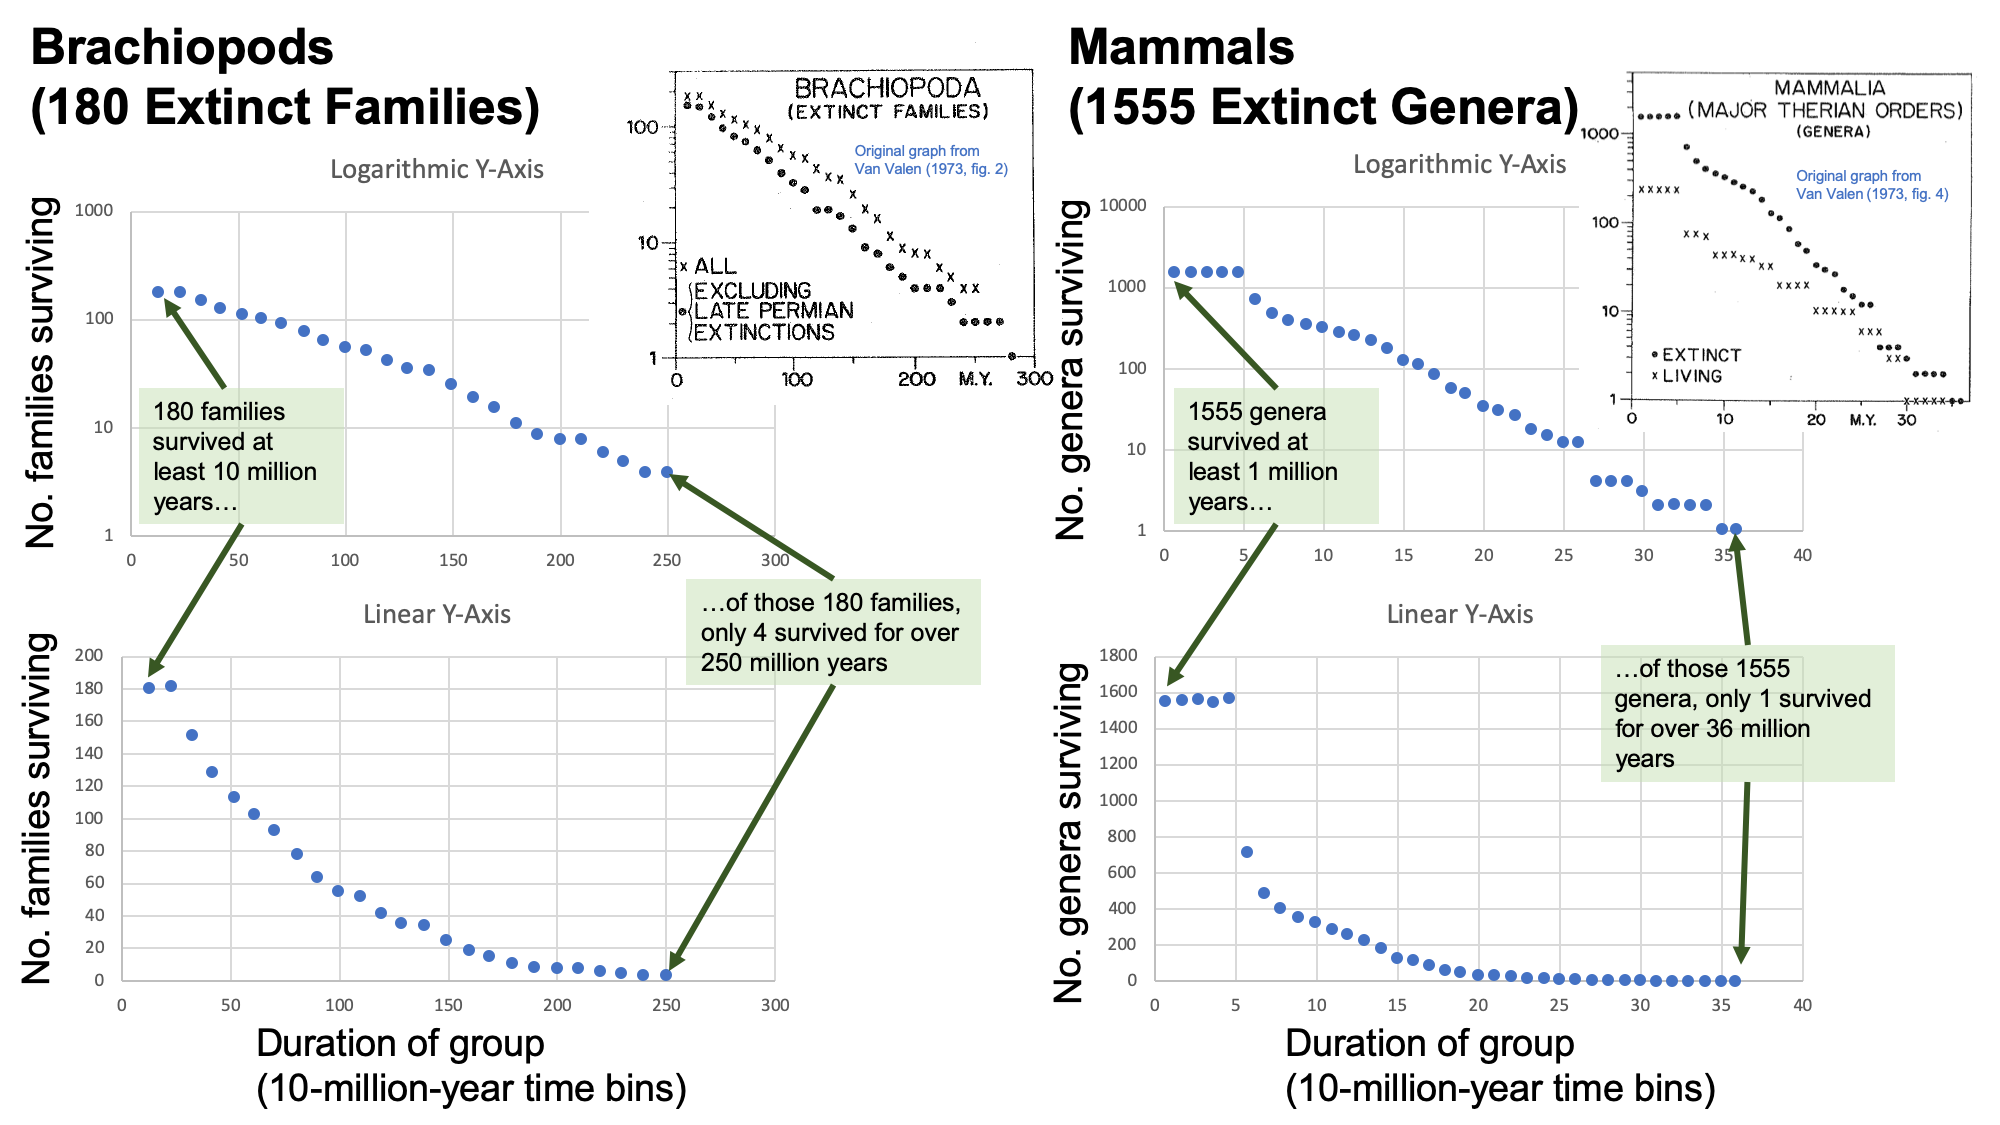 Image showing graphs that compare data derived from Van Valen's 1973 paper, including examples from extinct brachiopod families and extinct genera of mammals.